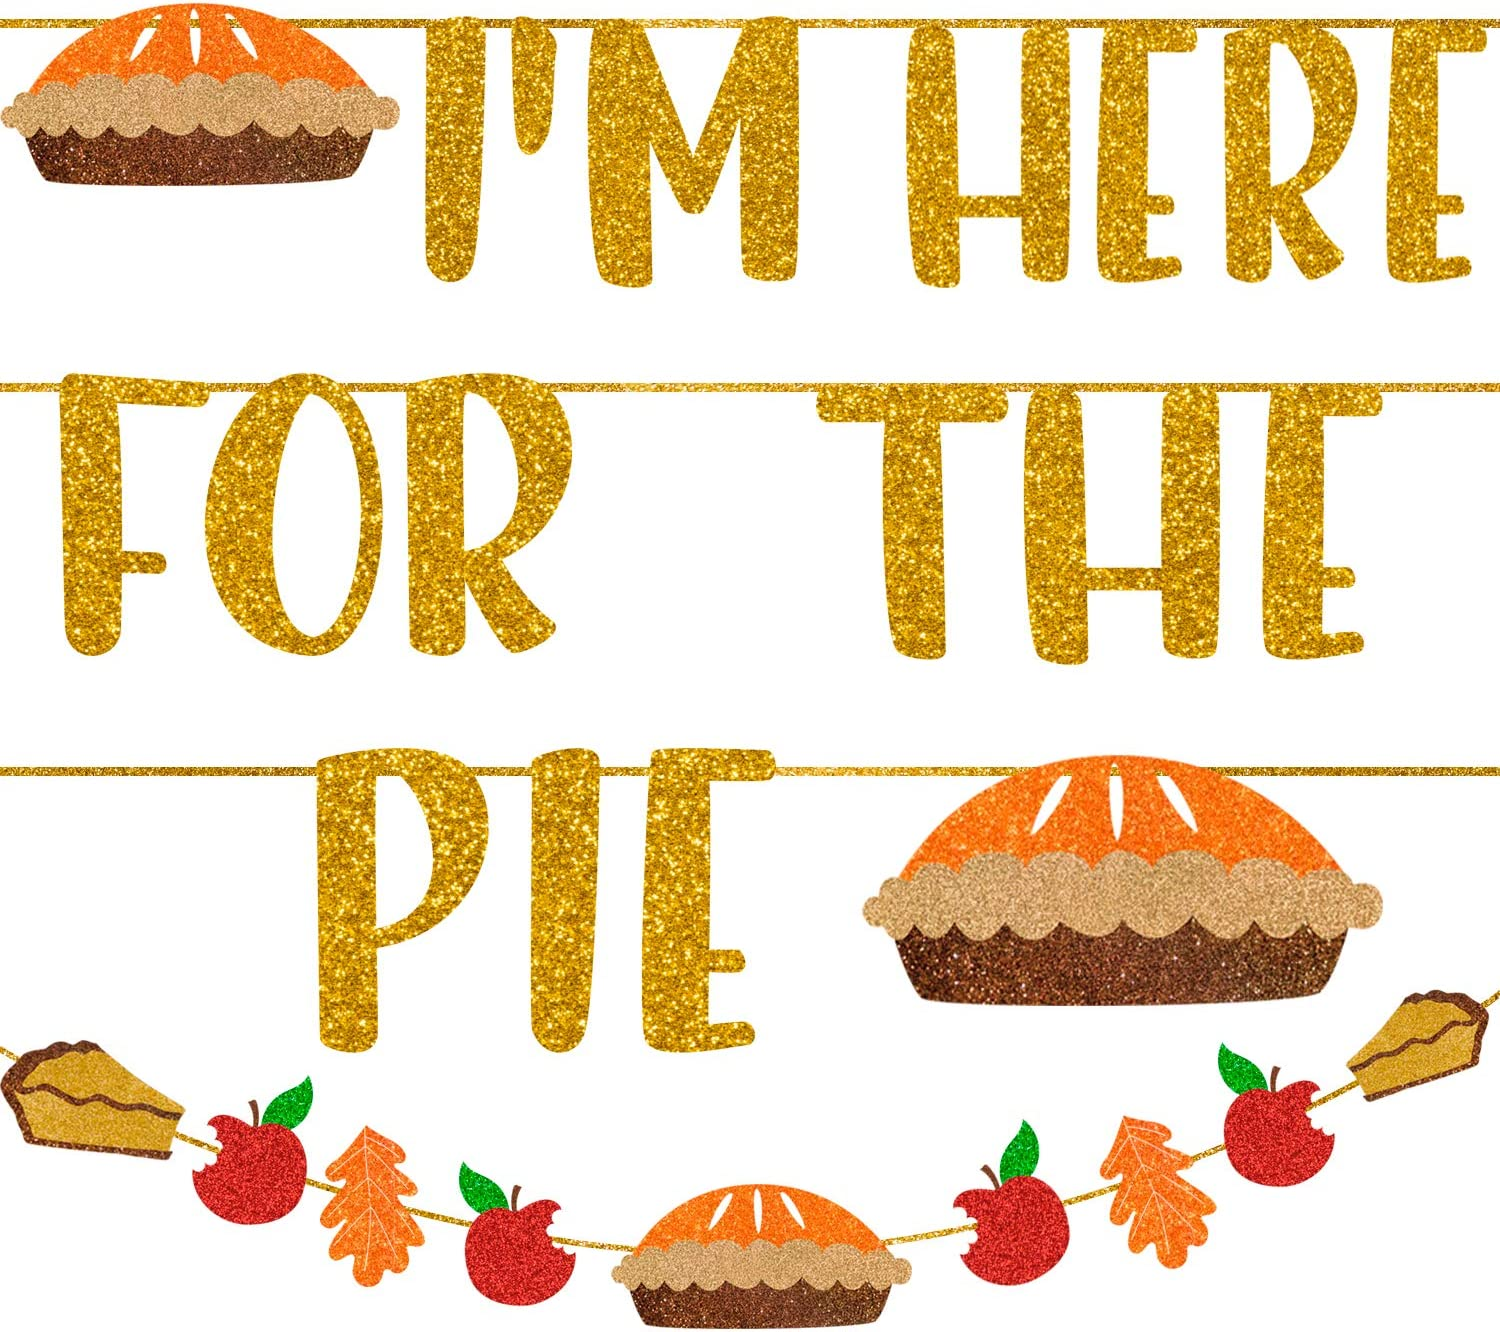 I'm here for the Pie Glittery Thanksgiving Banner + Apple, Pie, Autumn Leaves, Bunting Decor, Friendsgiving Funny Decoration Holidays Theme Party Supplies, Happy Fall Fest Day Sign